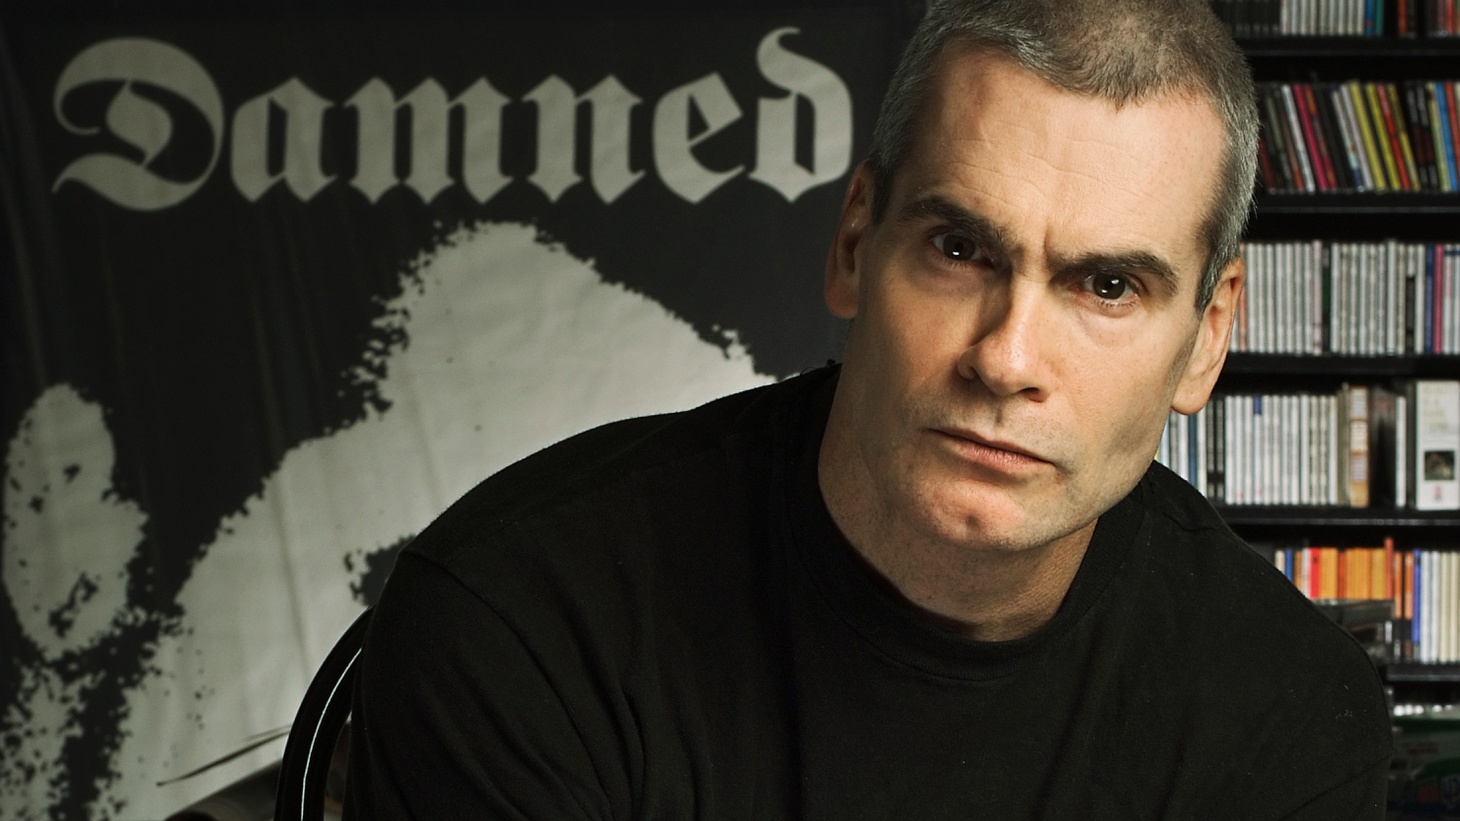 Two punk icons. One studio. Henry Rollins is joined by his good friend Ian MacKaye (Fugazi, Minor Threat, Dischord Records) as they chronicle their history of seeing shows together, from The Clash to The Cramps, in this special Guest DJ set.